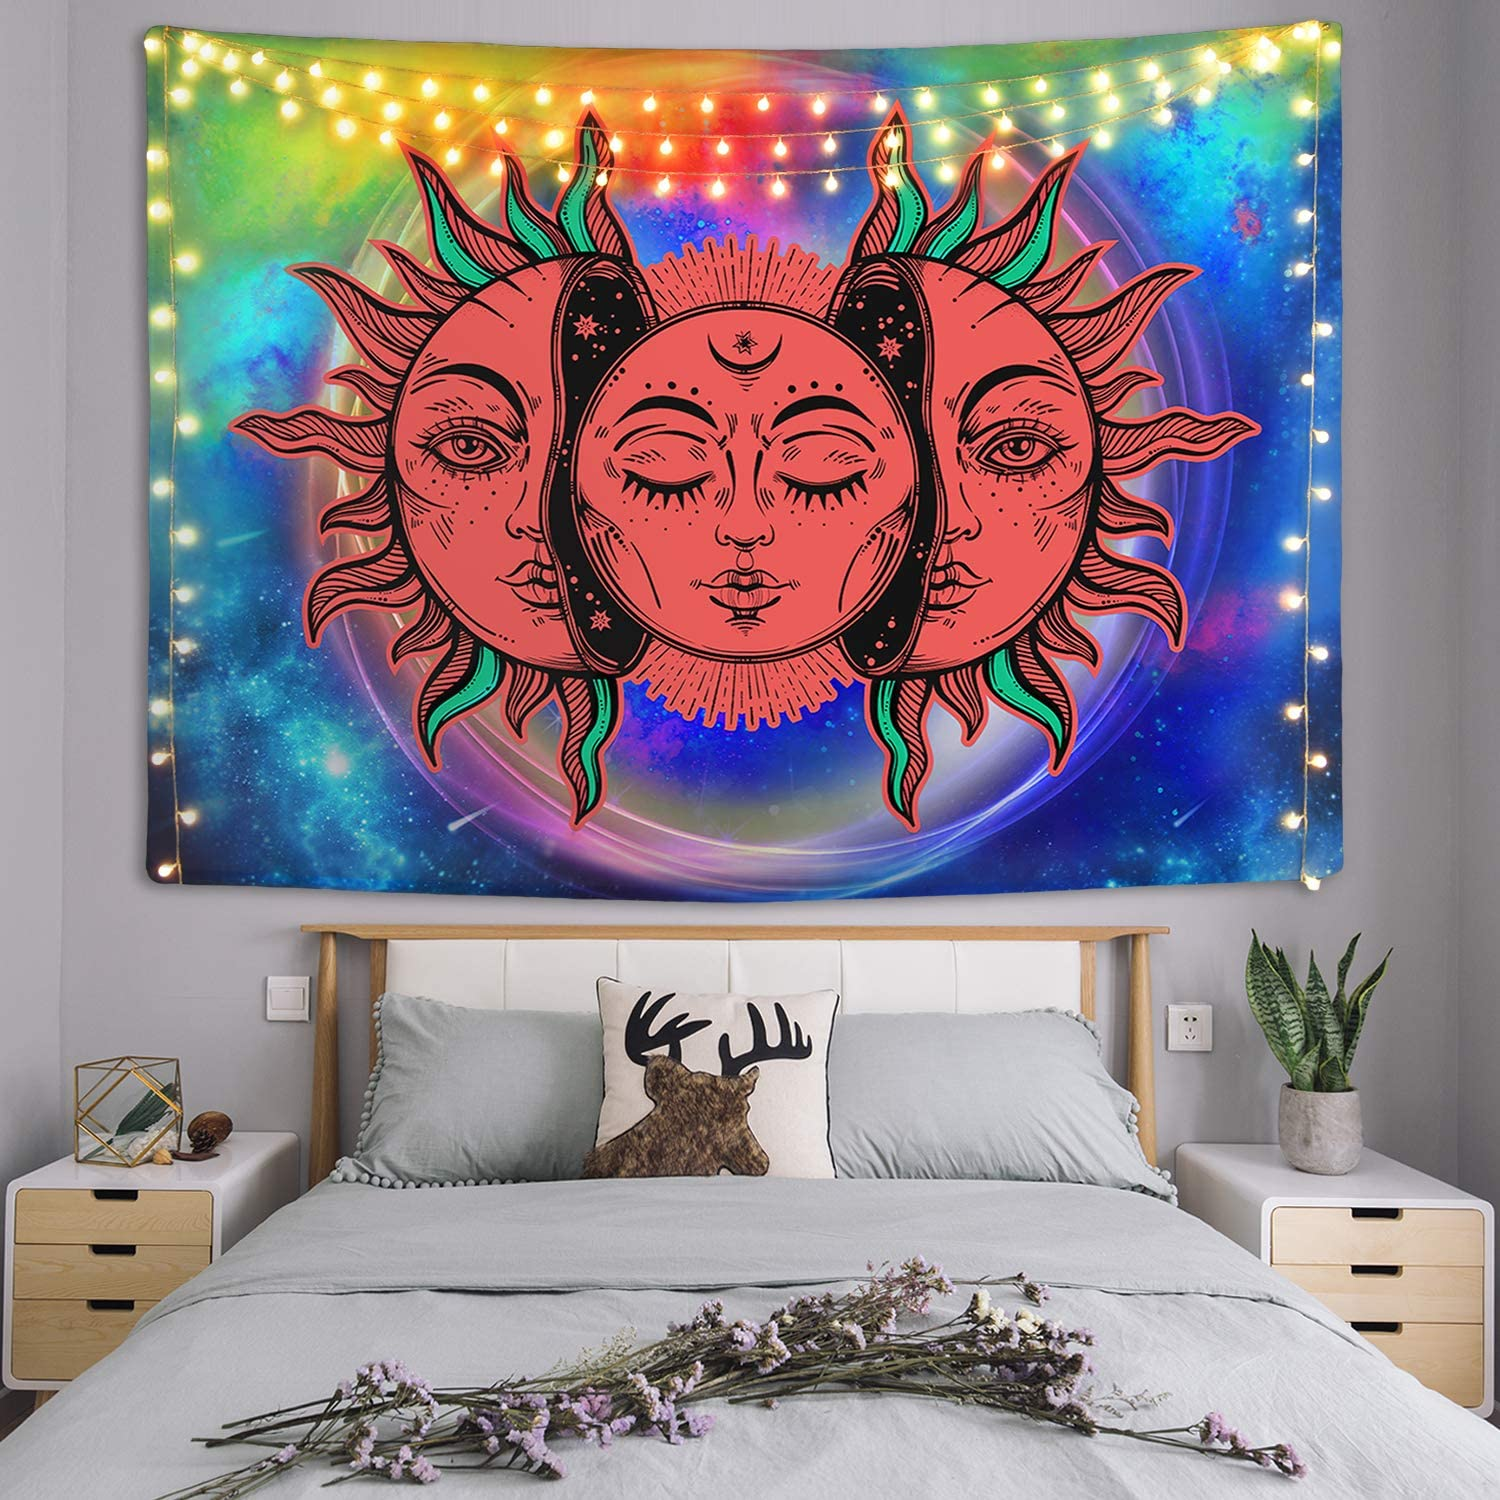 Sun and Sale Moon Tapestry Psychedelic Sales results No. 1 Celest Burning Tapestries